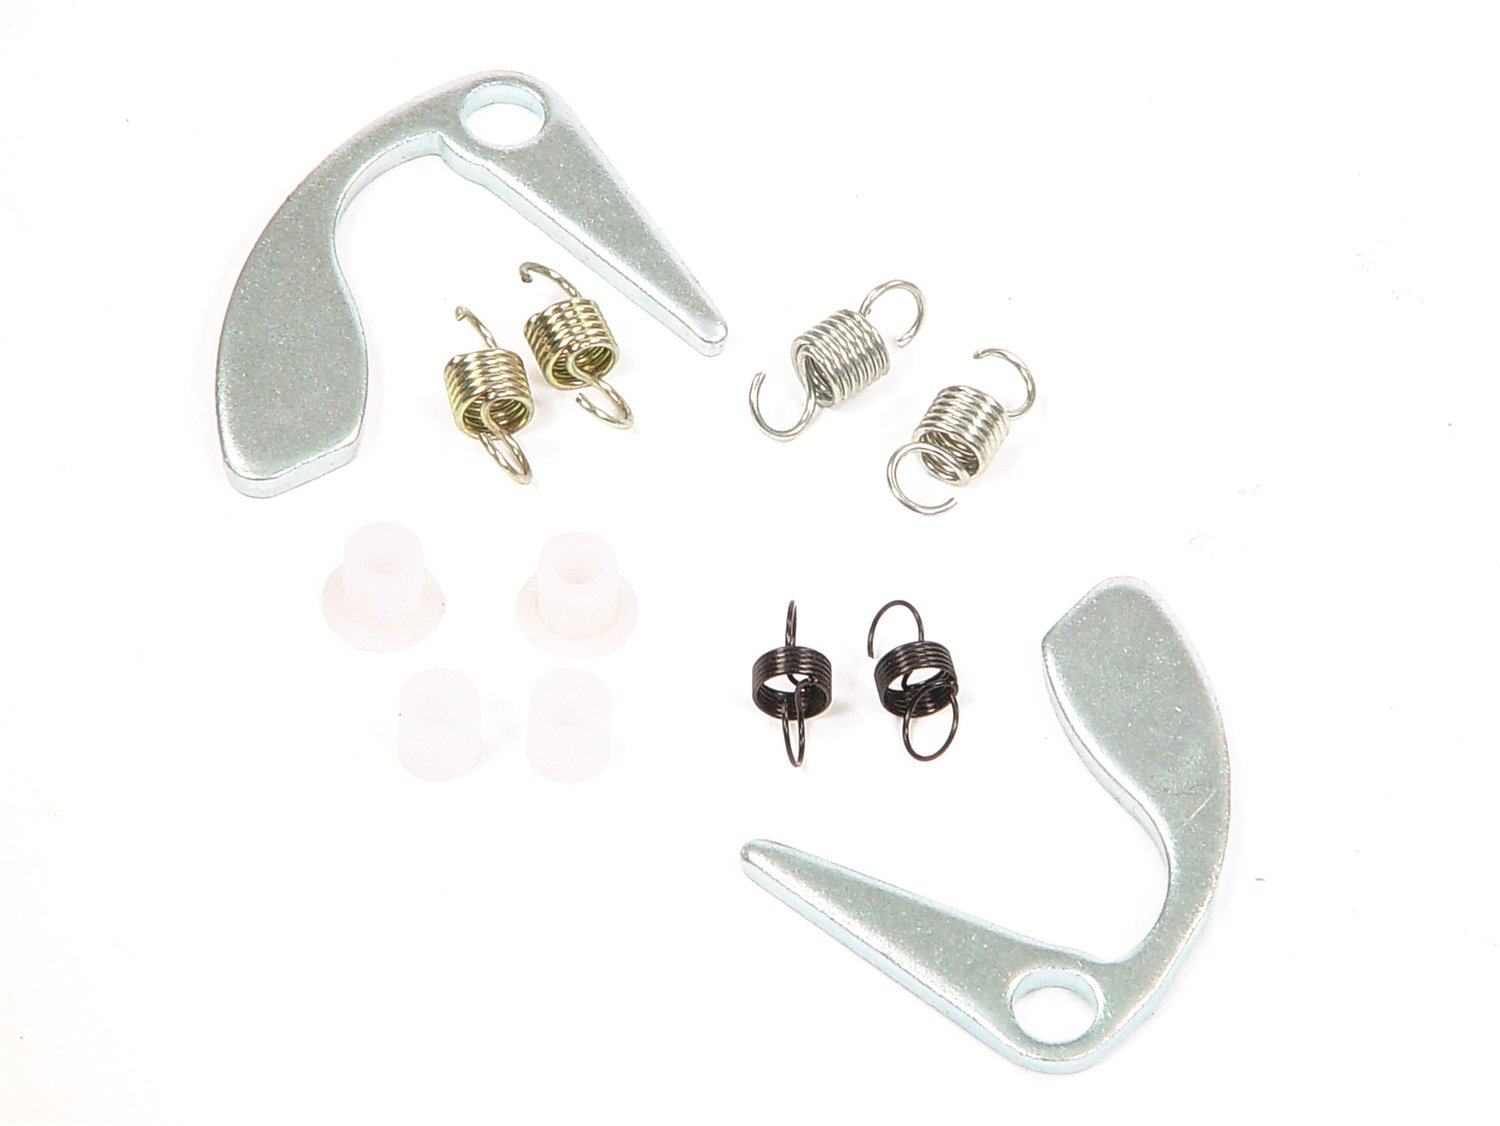 MSD 8428 Distributor Advance Adjustable Spring and Weight Kit